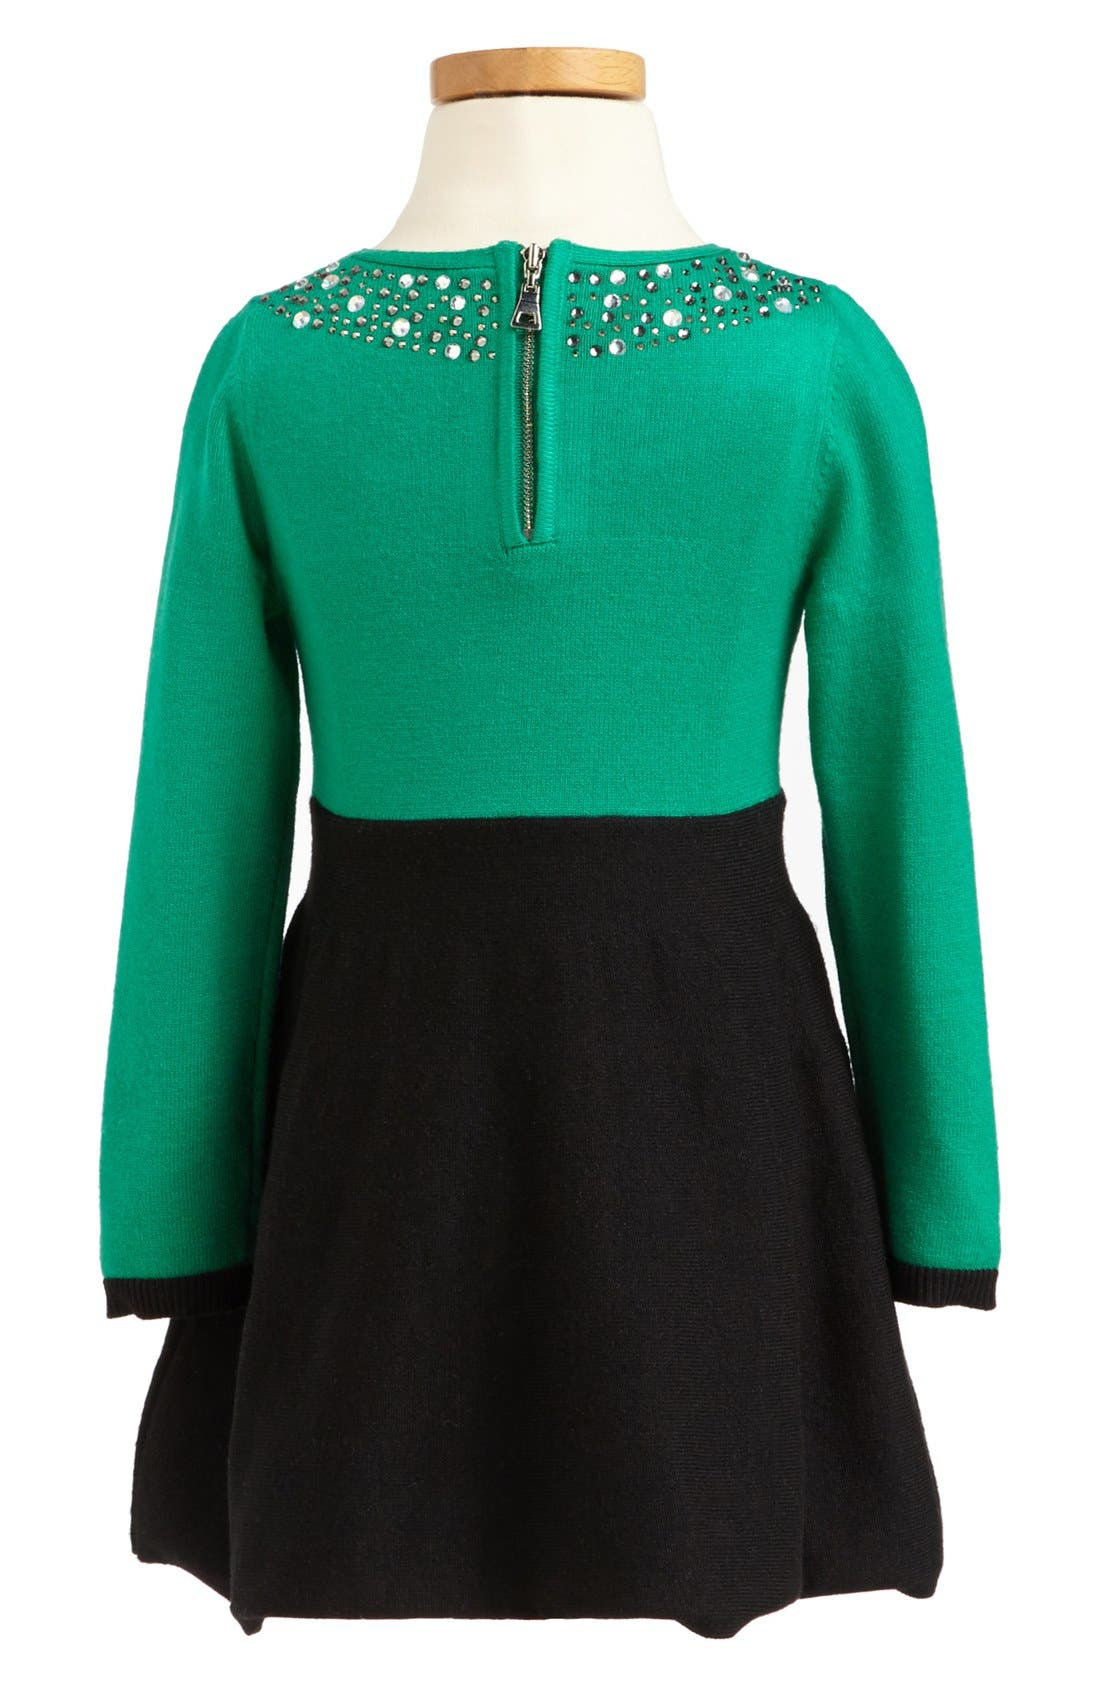 Alternate Image 2  - Milly Minis Rhinestone Collar Dress (Toddler Girls, Little Girls & Big Girls)